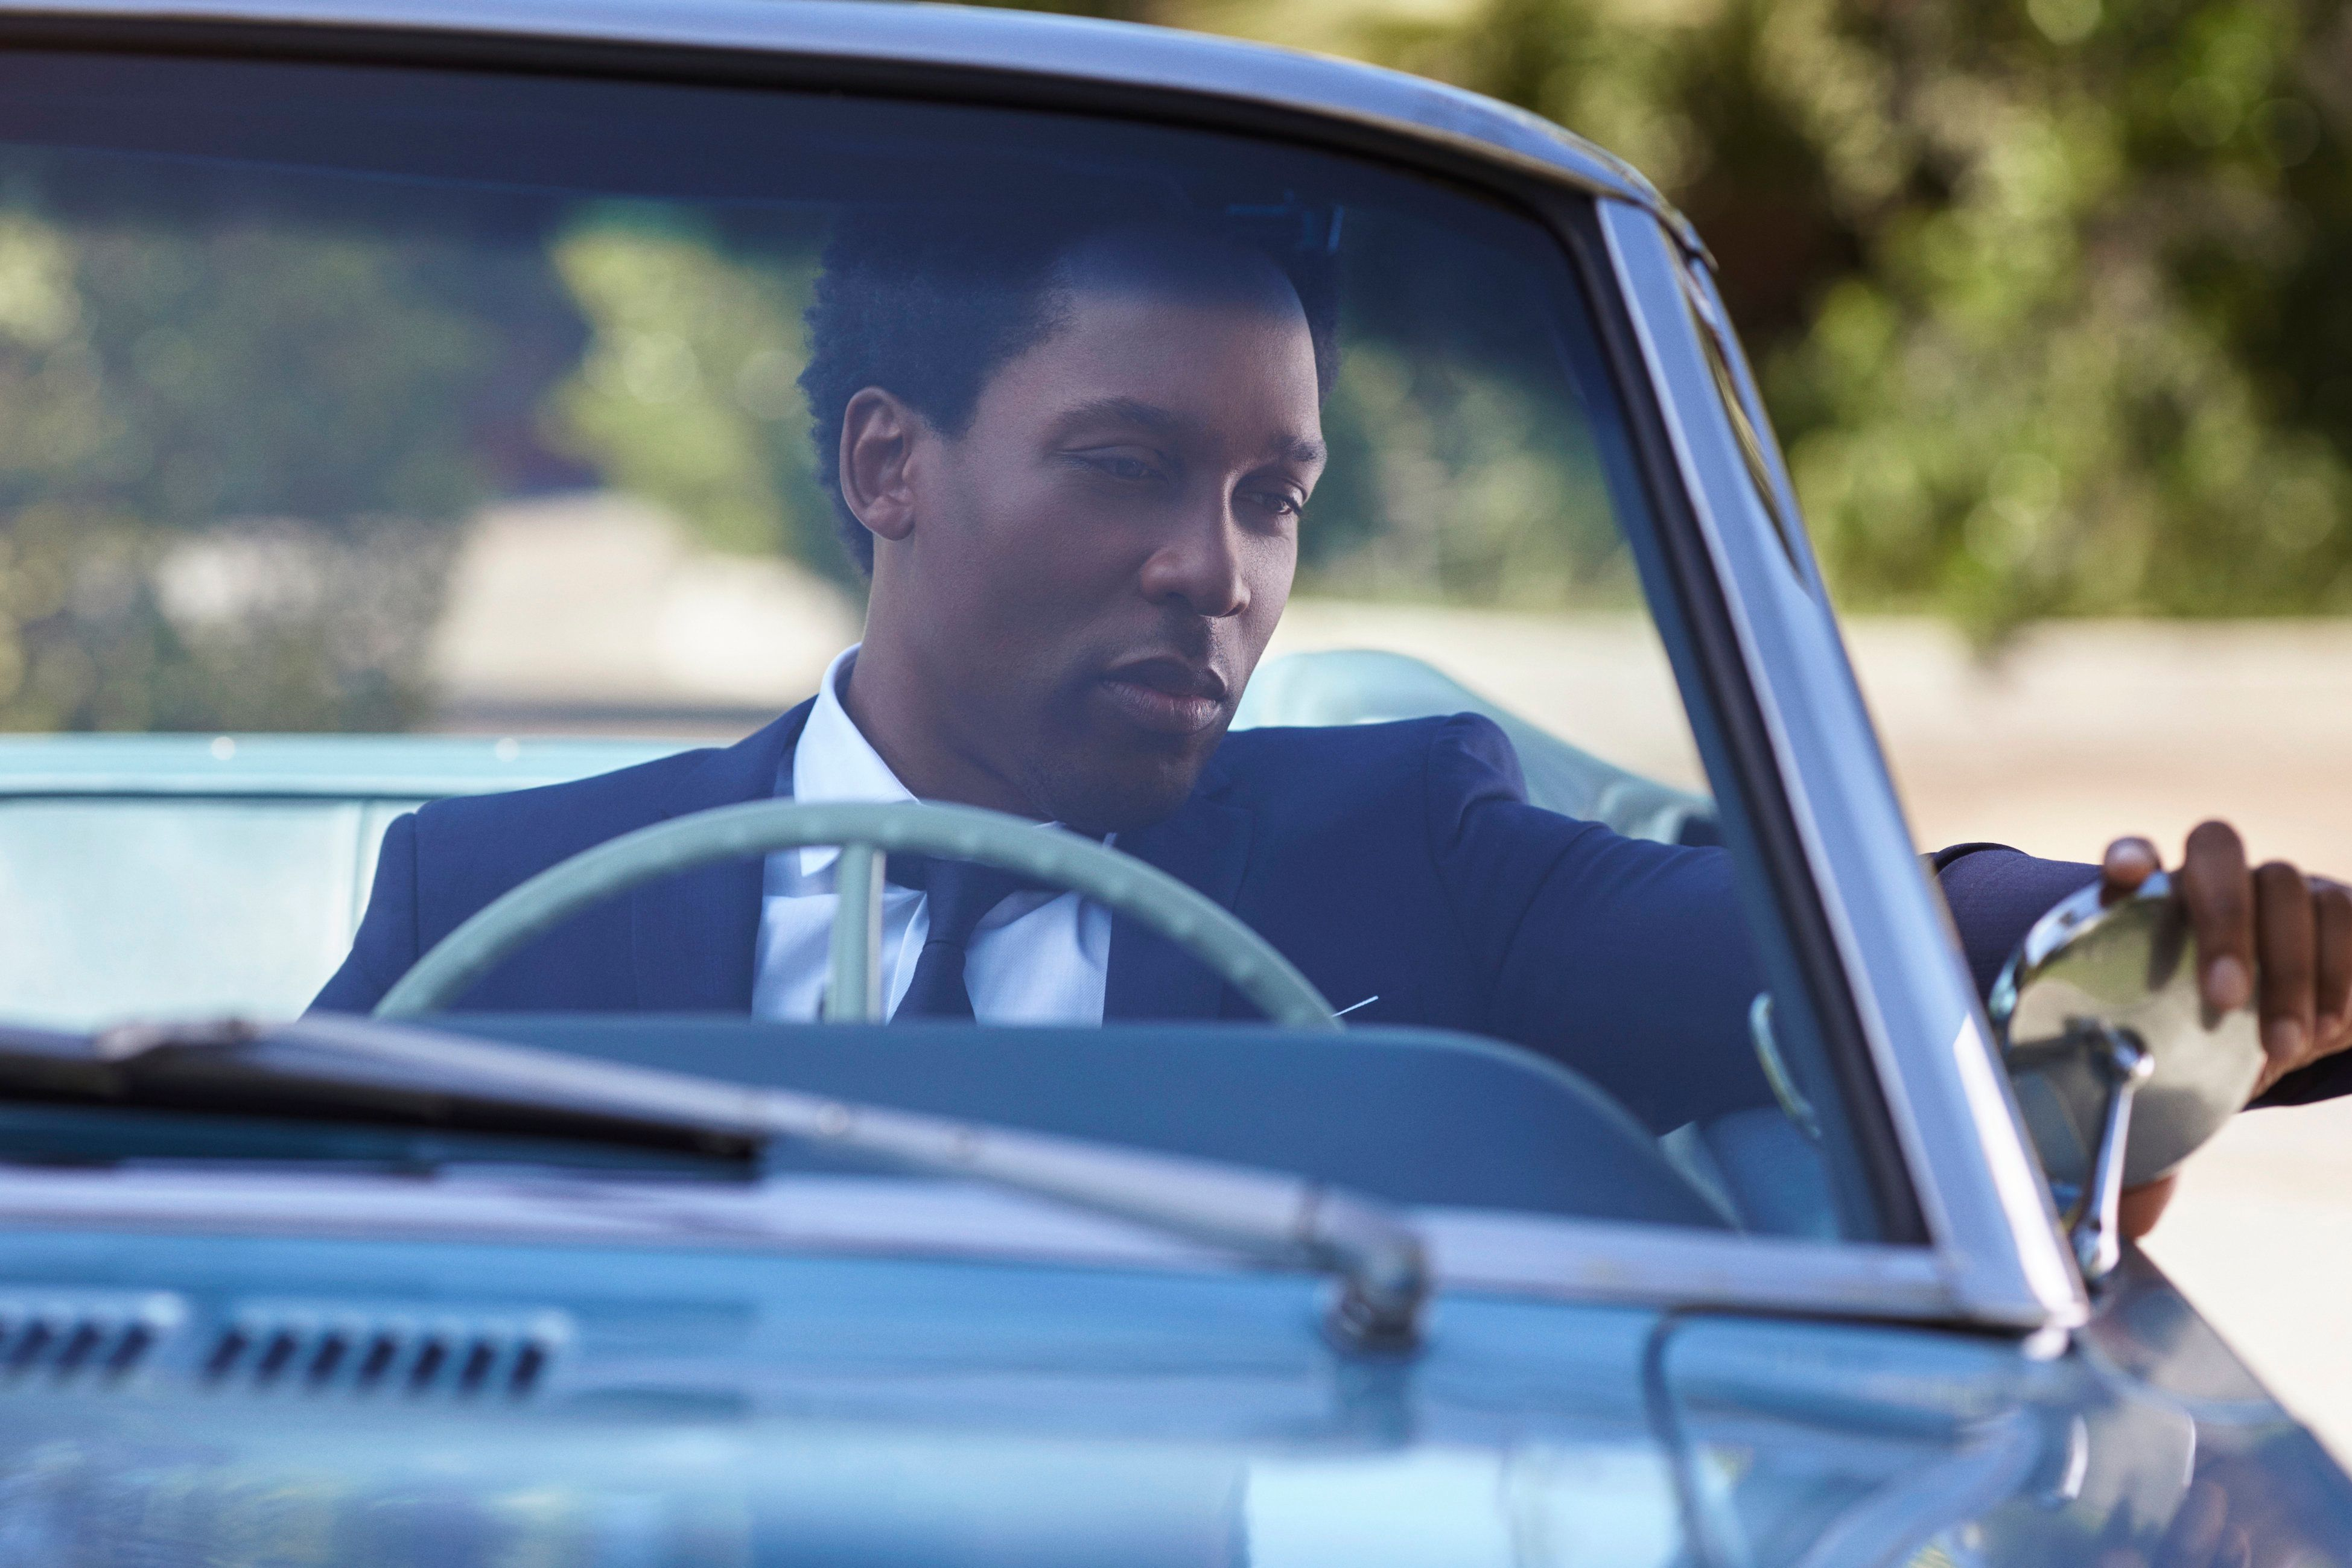 WISE WORDS: Lemar Tells Us About His Hardest Day - 'Things Continue Even When We're